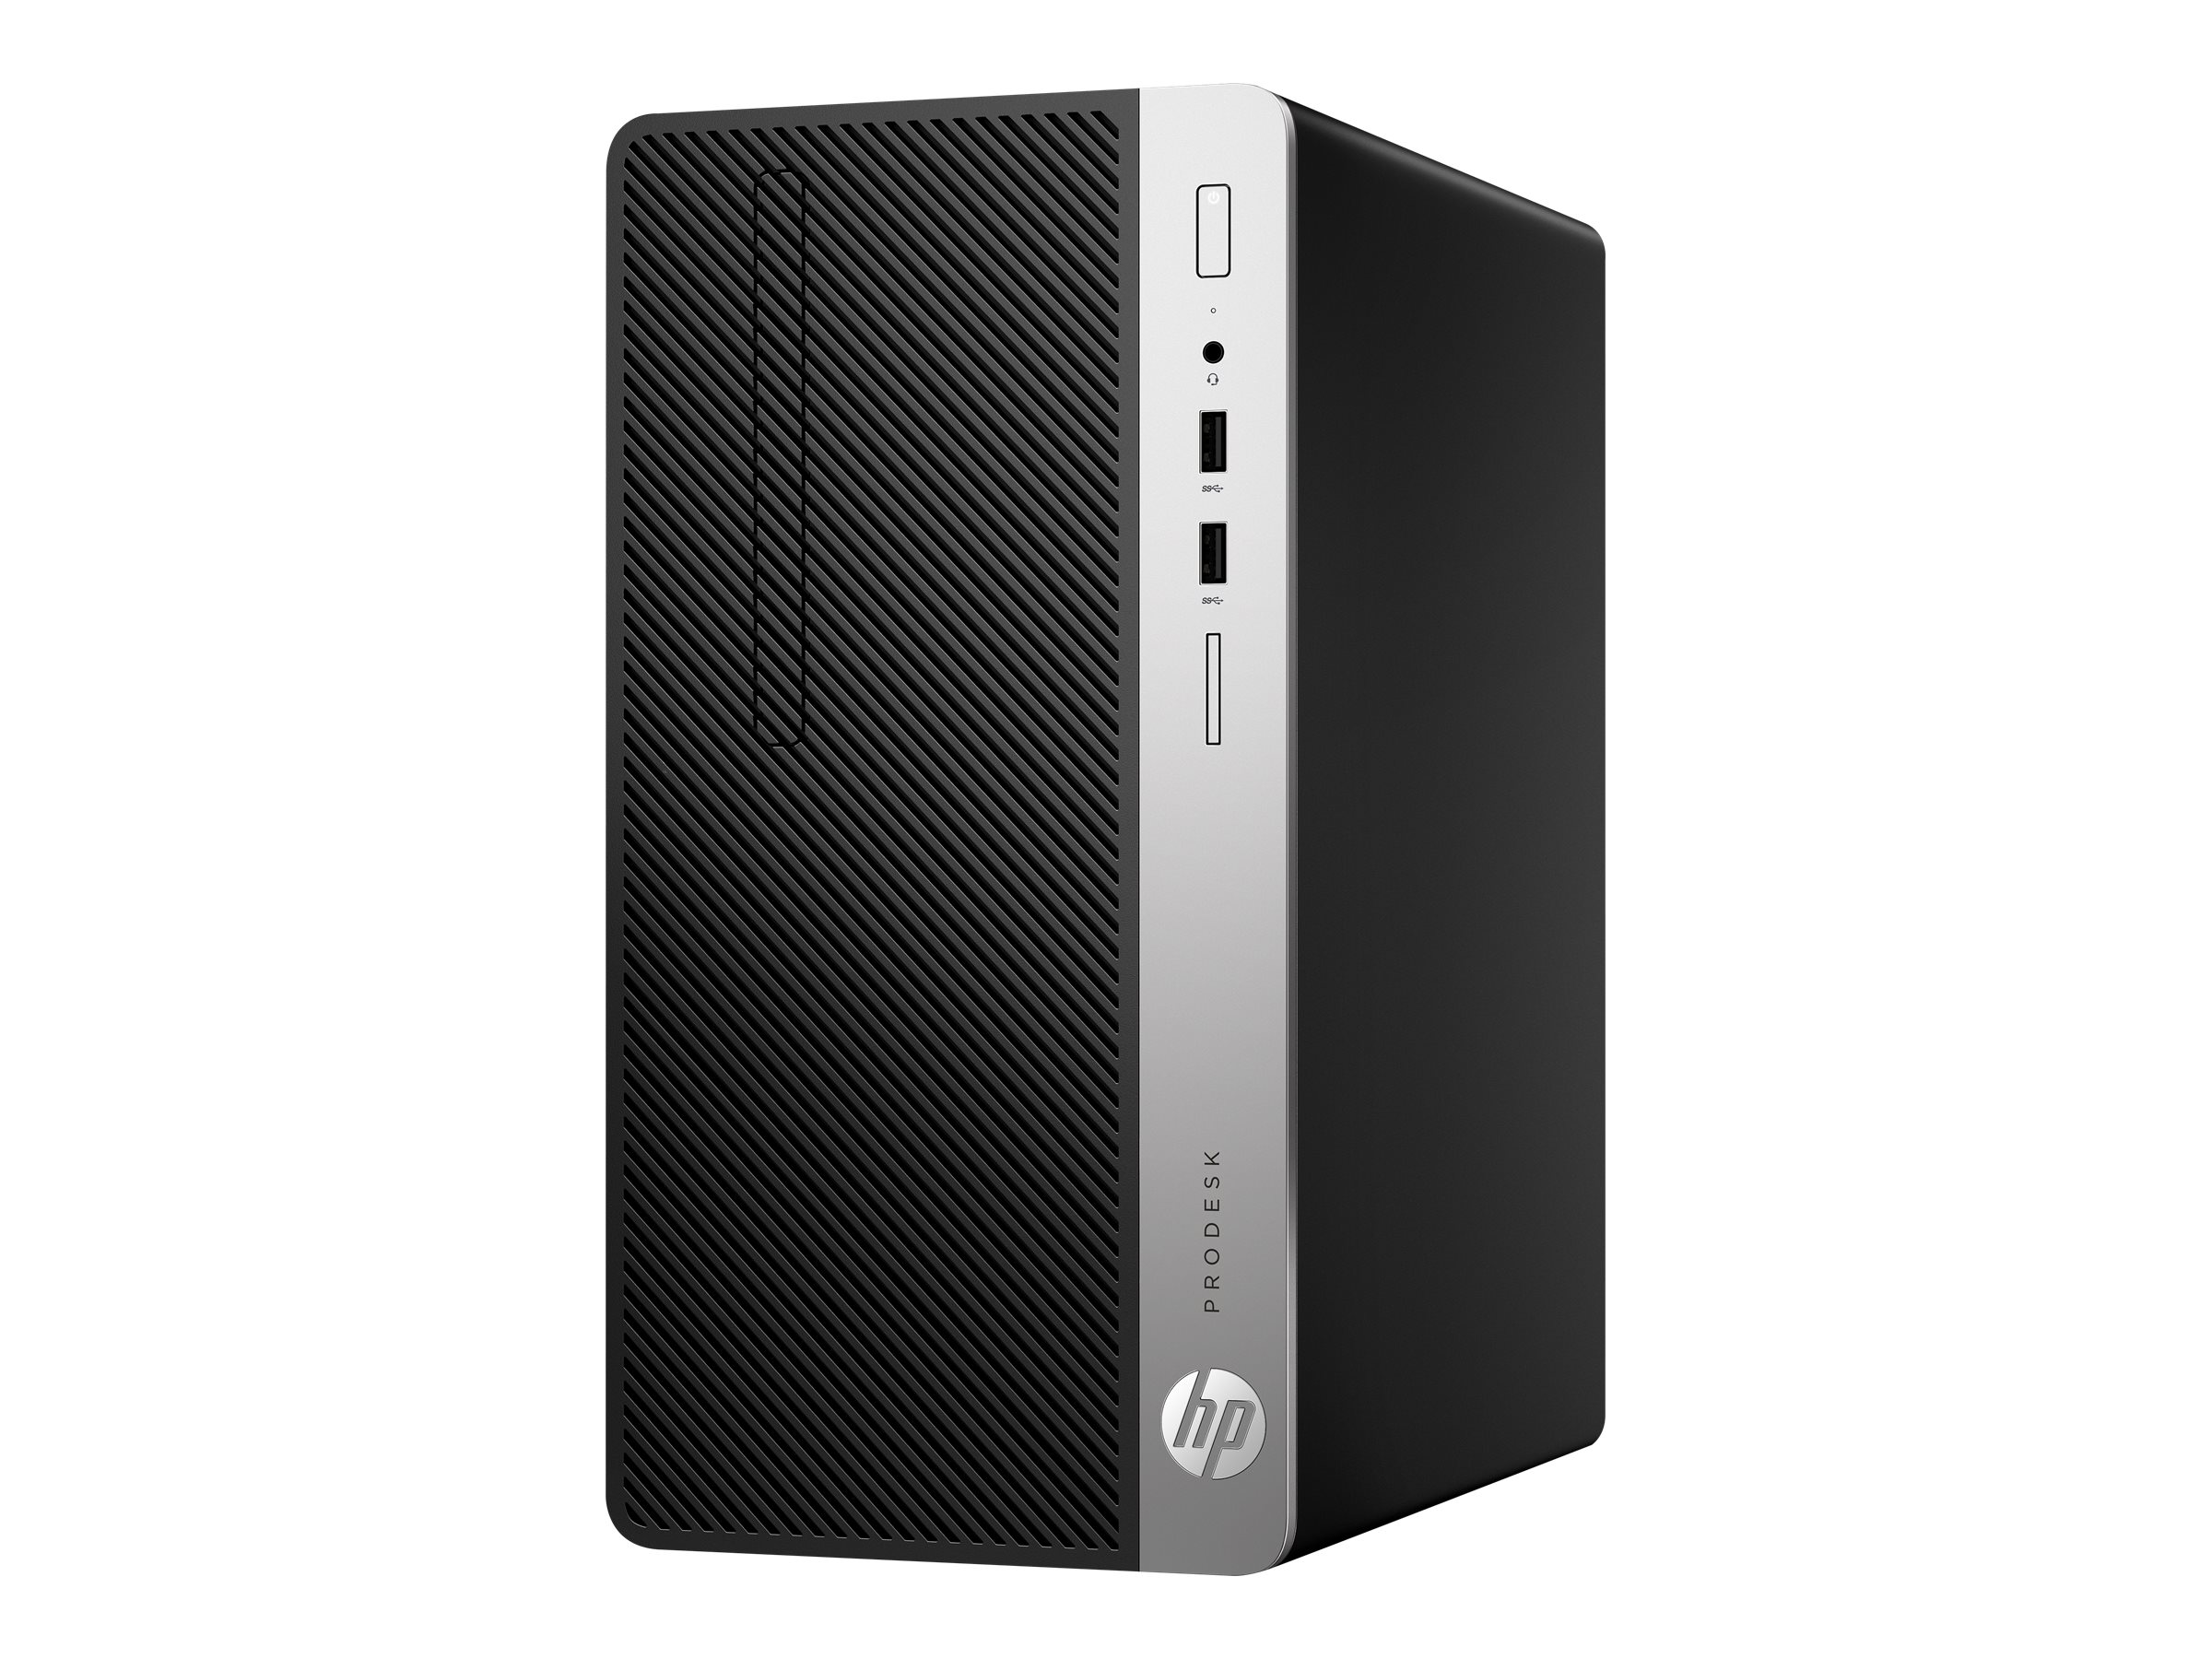 HP ProDesk 400 G4 - Micro Tower - 1 x Core i7 7700 / 3.6 GHz - RAM 8 GB - SSD 256 GB - DVD-Writer